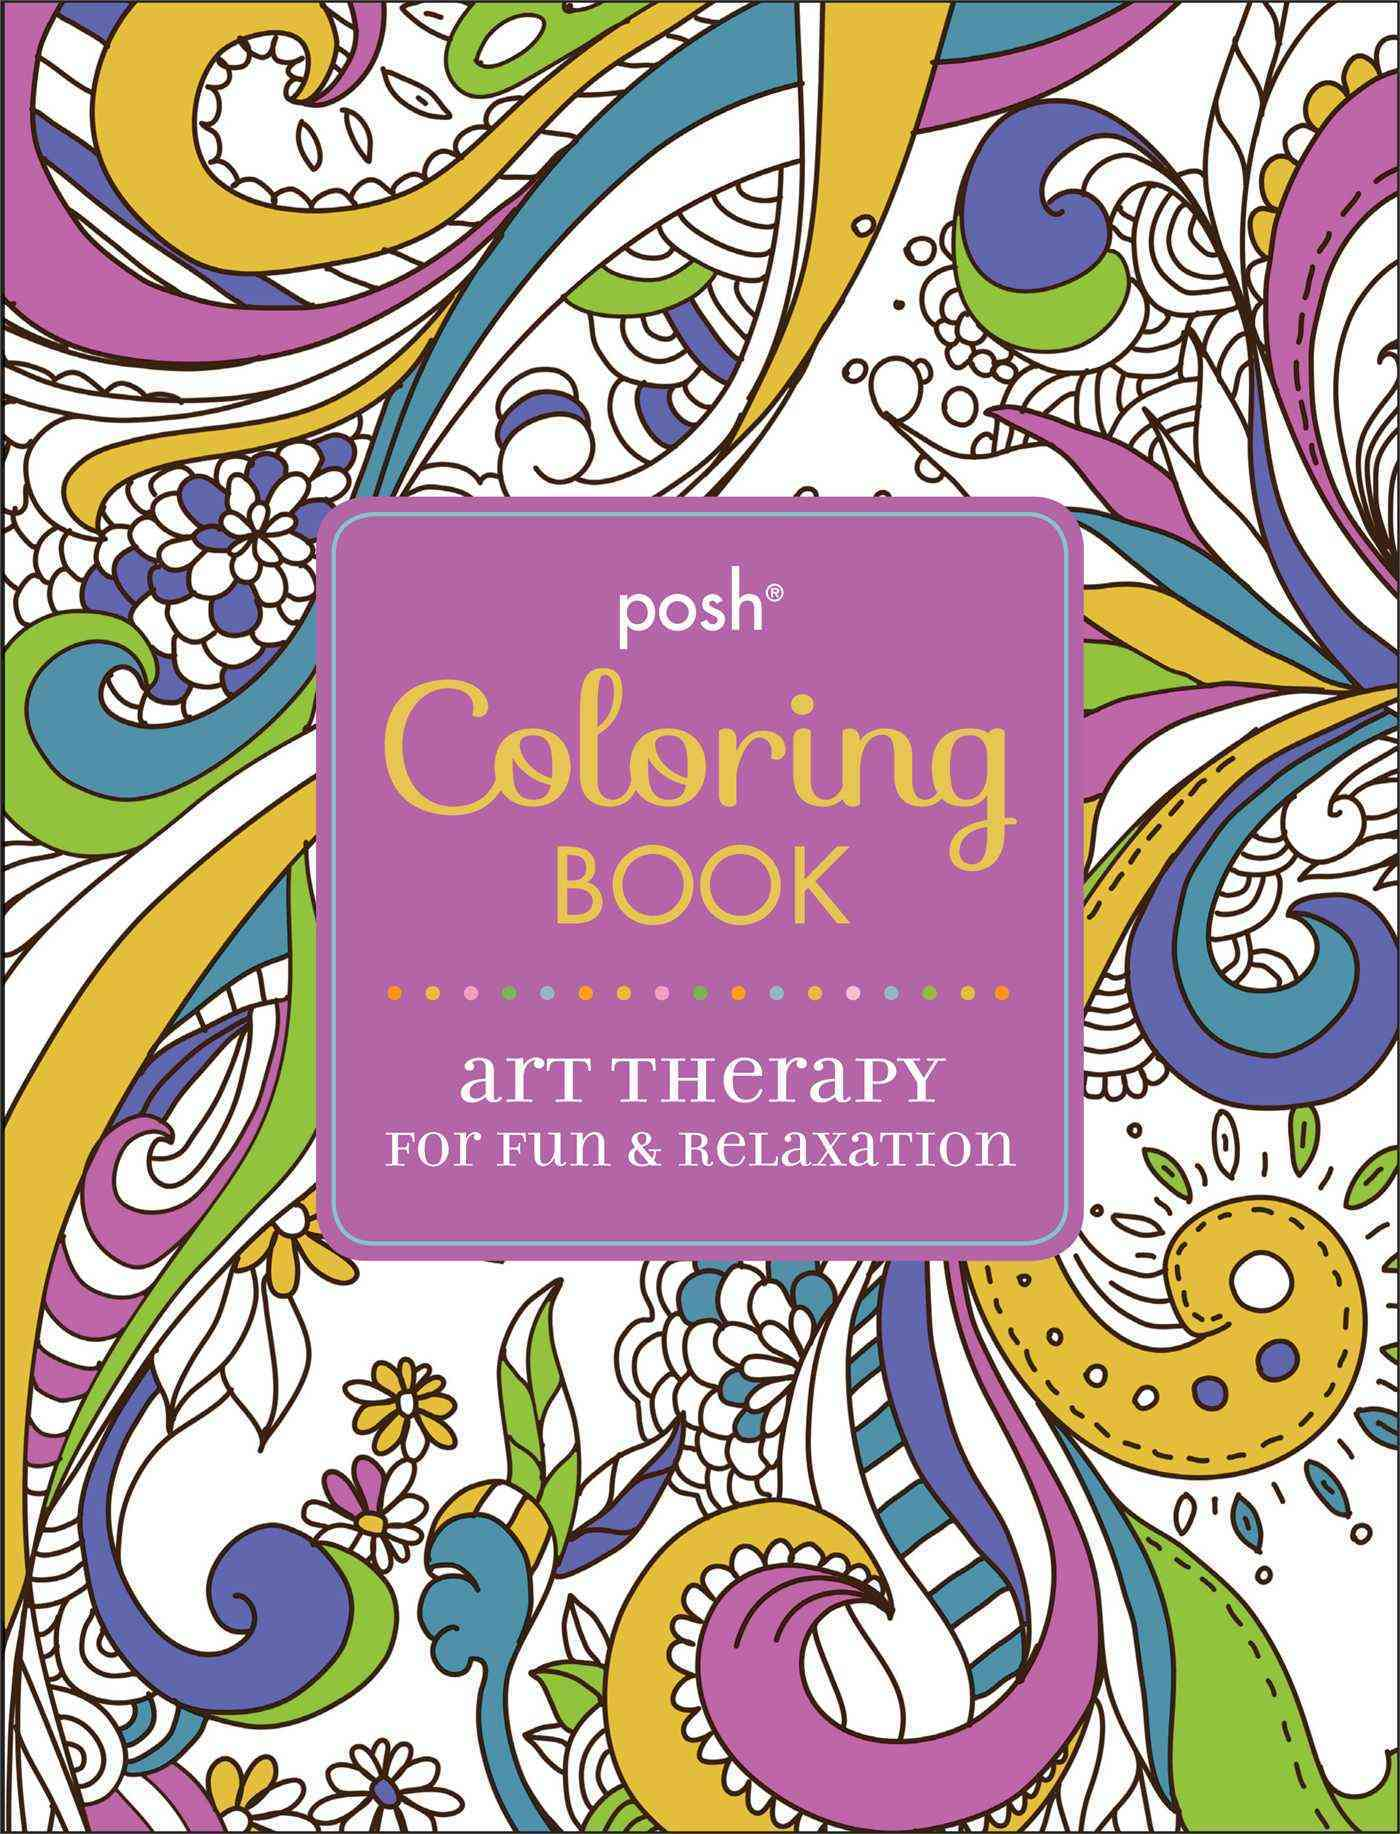 Coloring Books For Relaxation : Posh coloring book art therapy for fun relaxation